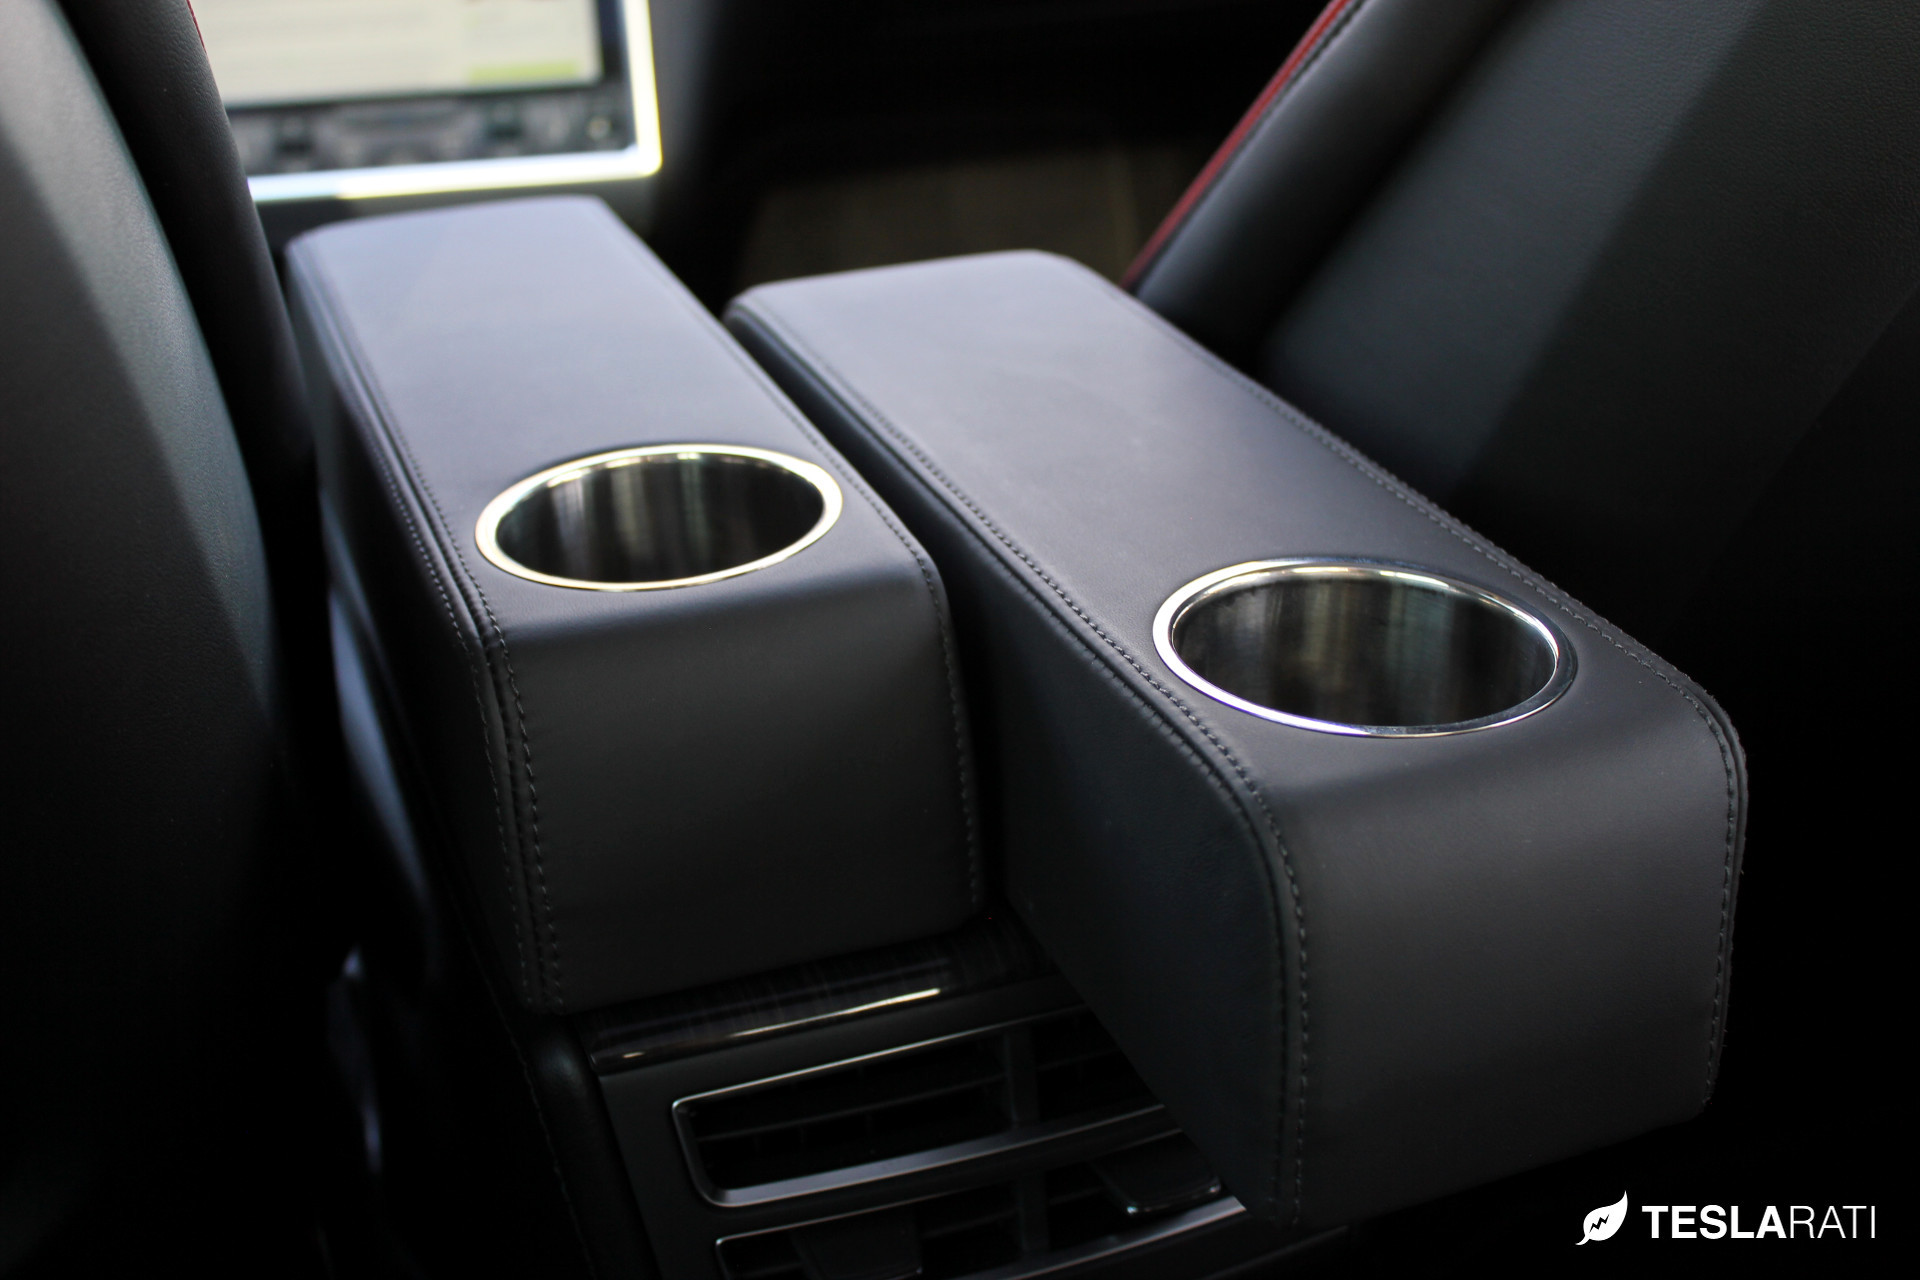 Rear passenger's cup holder